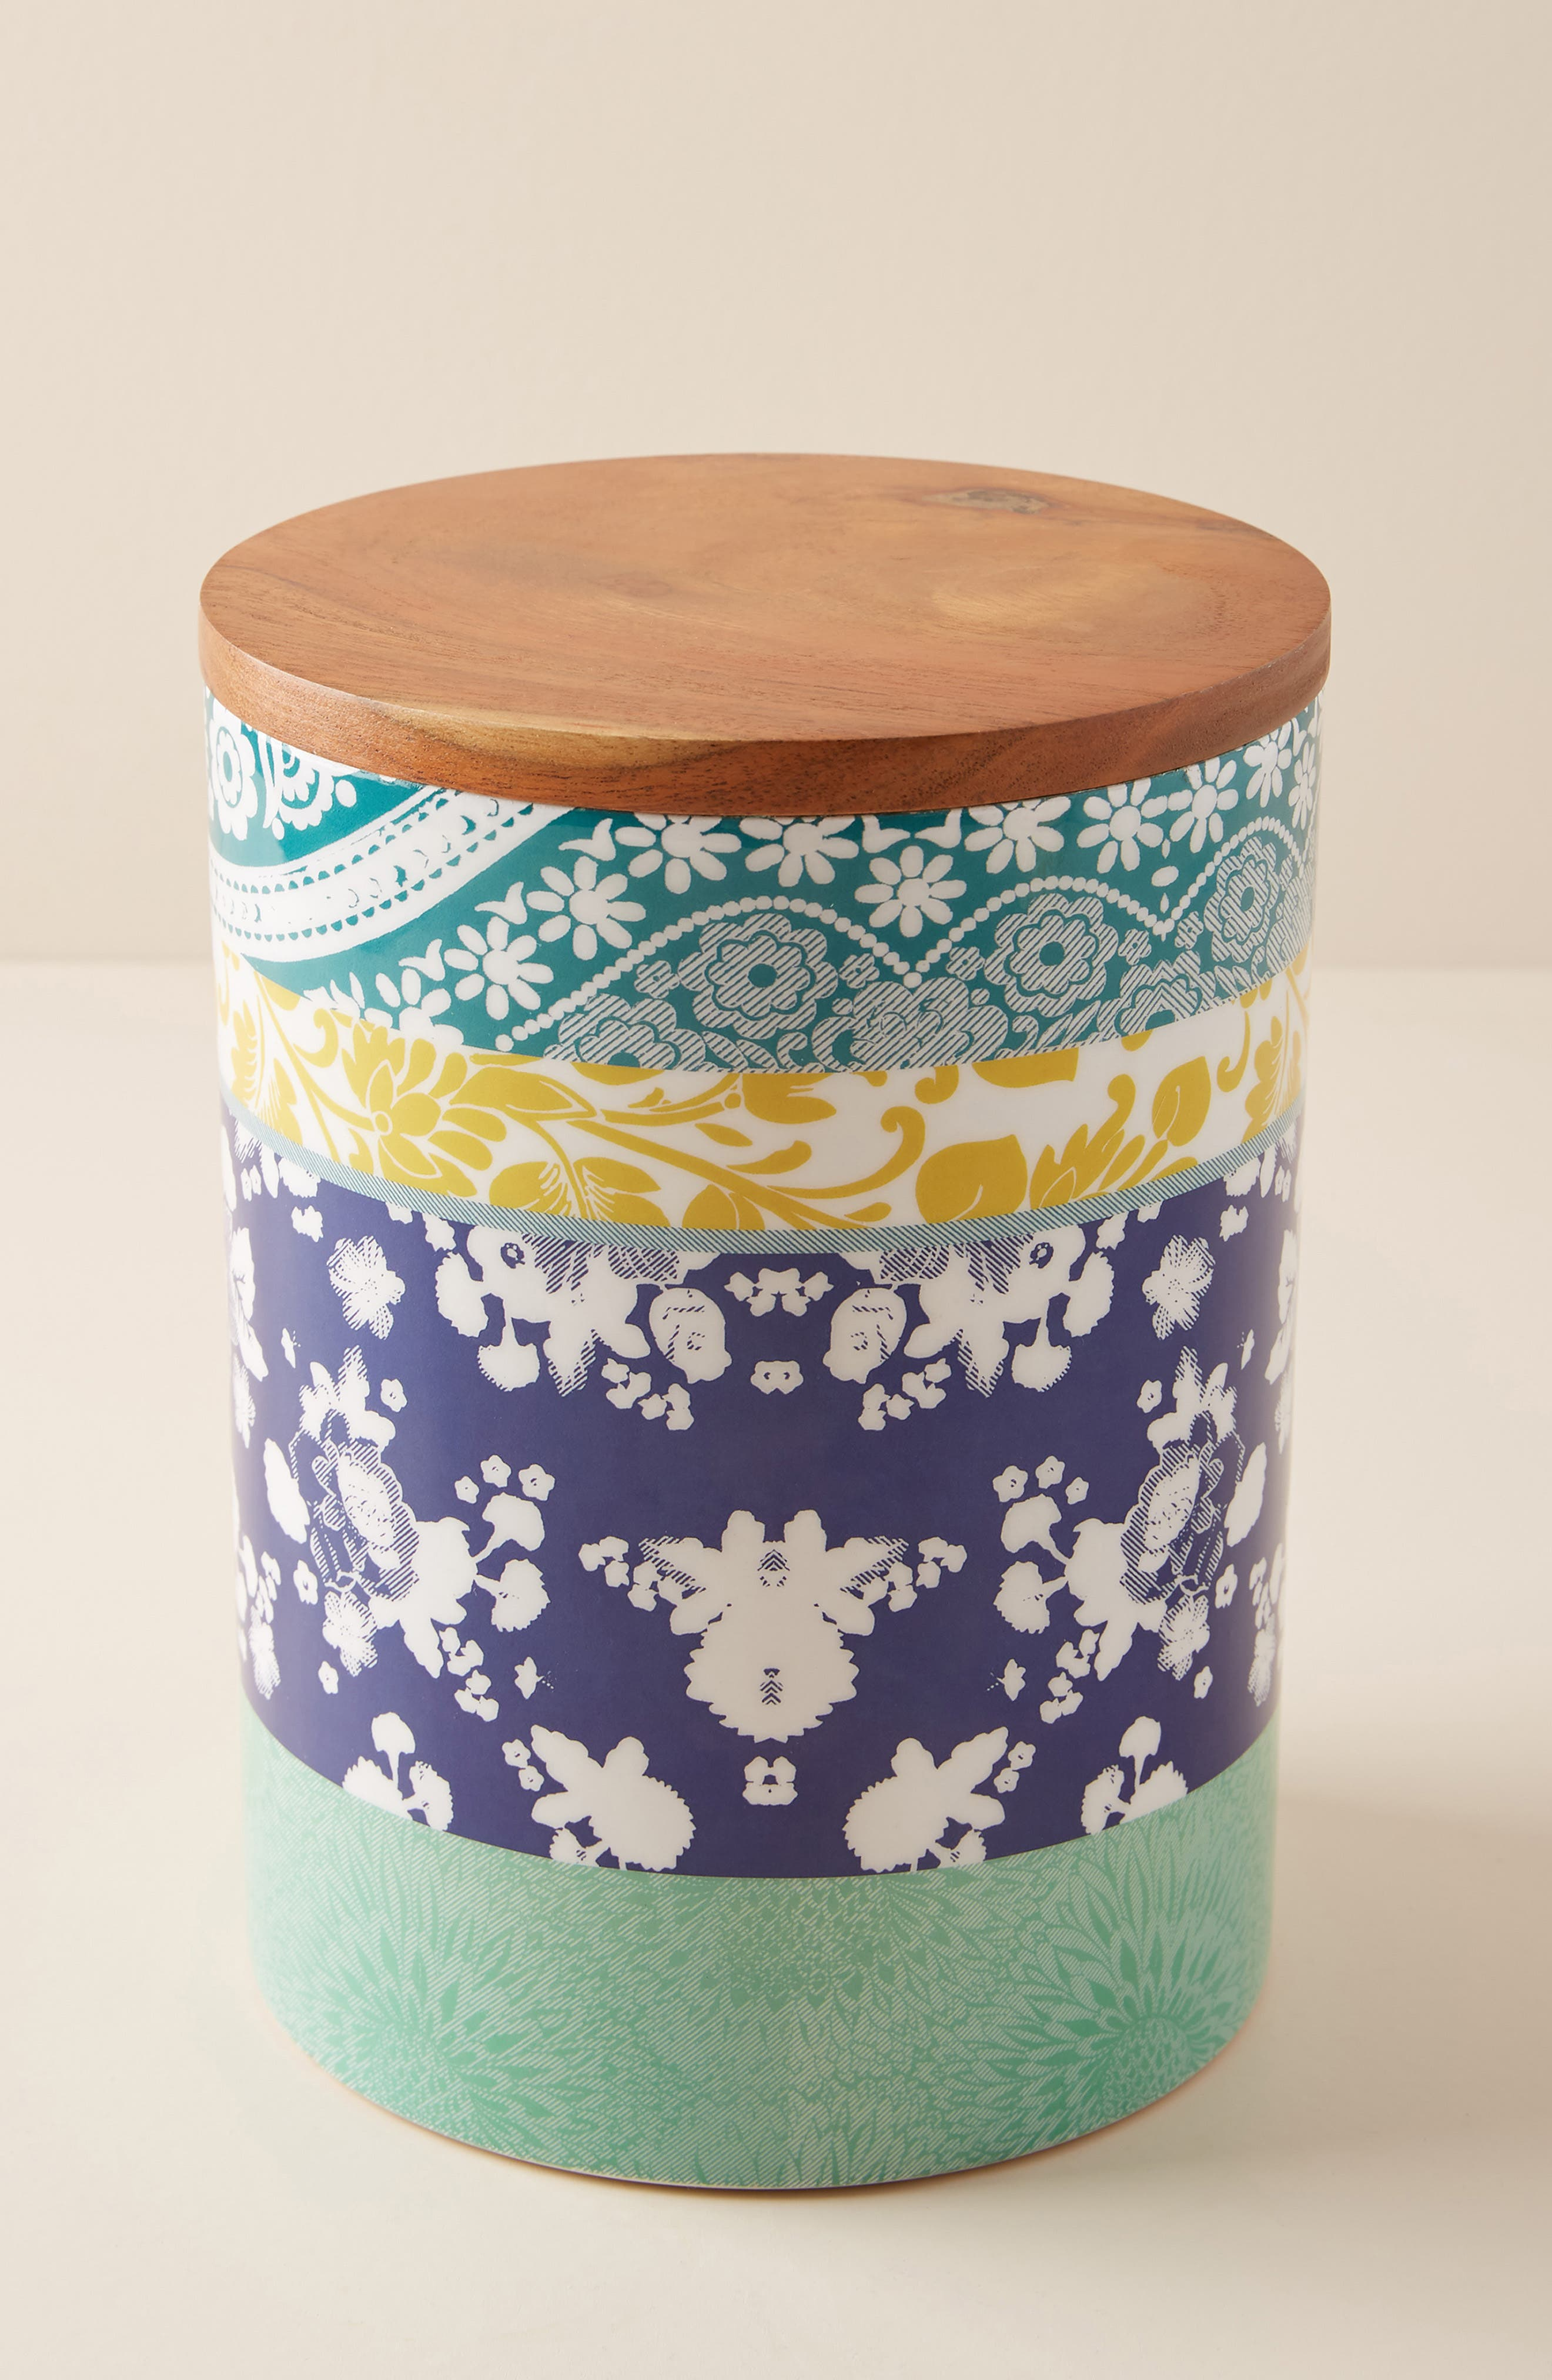 ANTHROPOLOGIE,                             Jacquard Canister,                             Main thumbnail 1, color,                             PURPLE